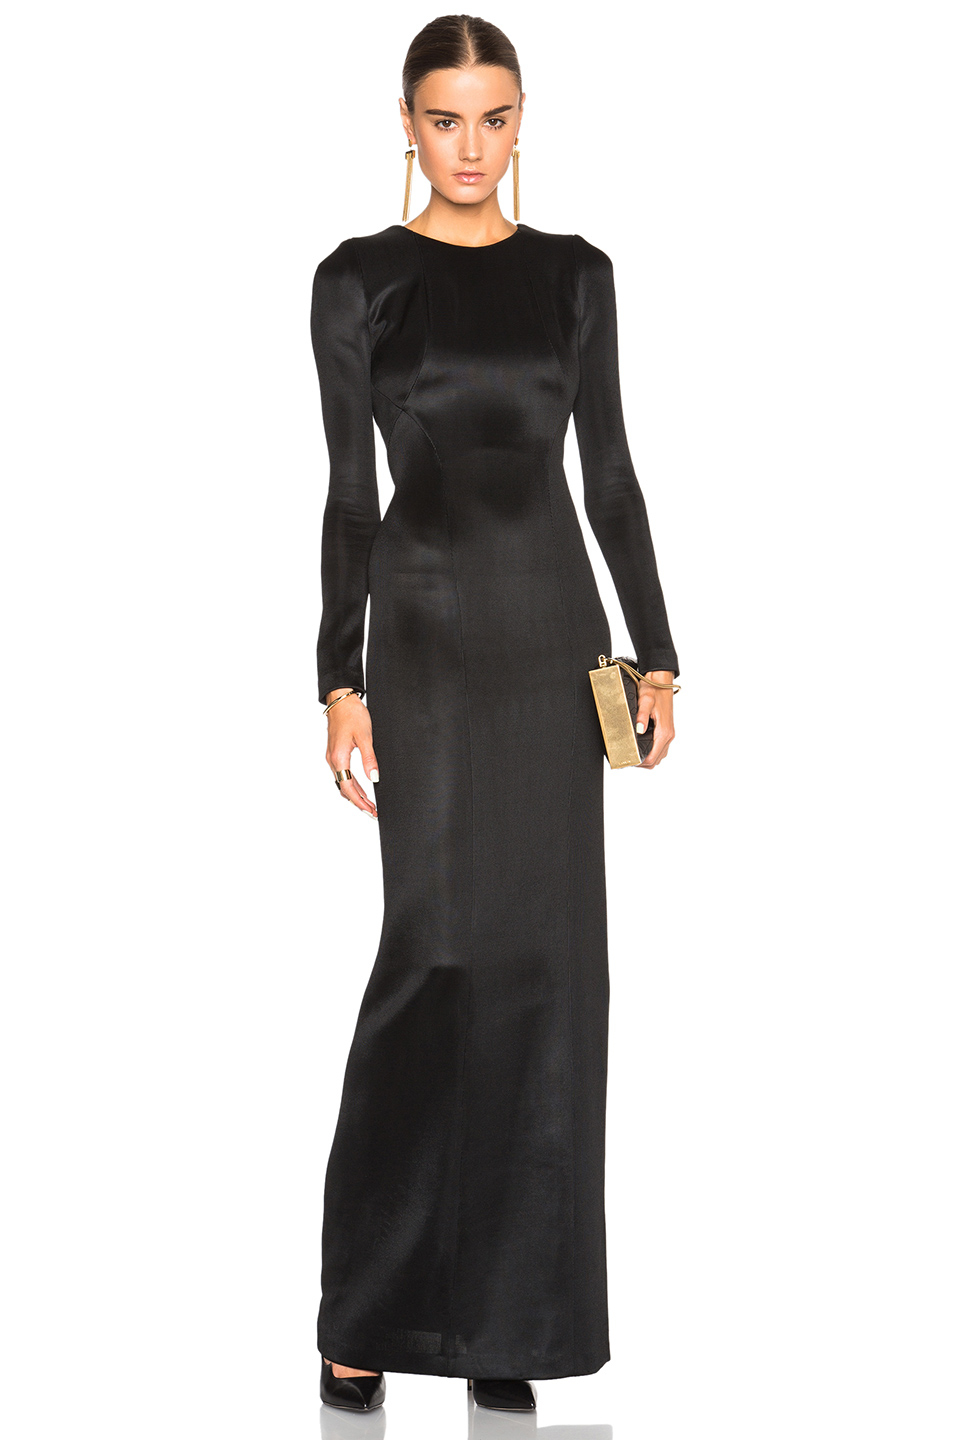 Collection Black Long Sleeve Backless Dress Pictures - Reikian